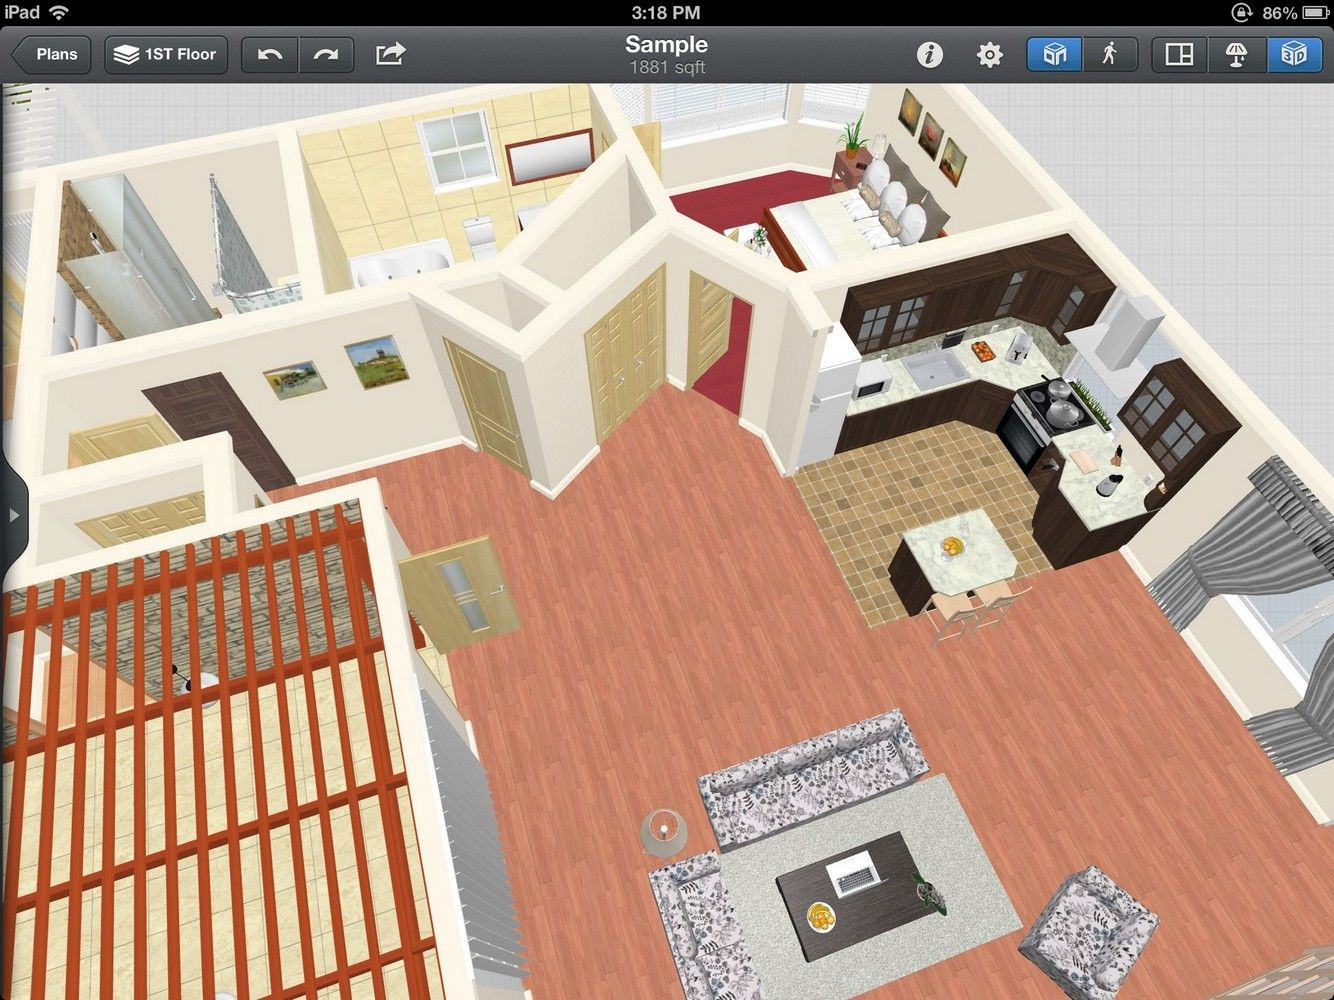 Create Your Space Using Ipad Interior Design App Floor